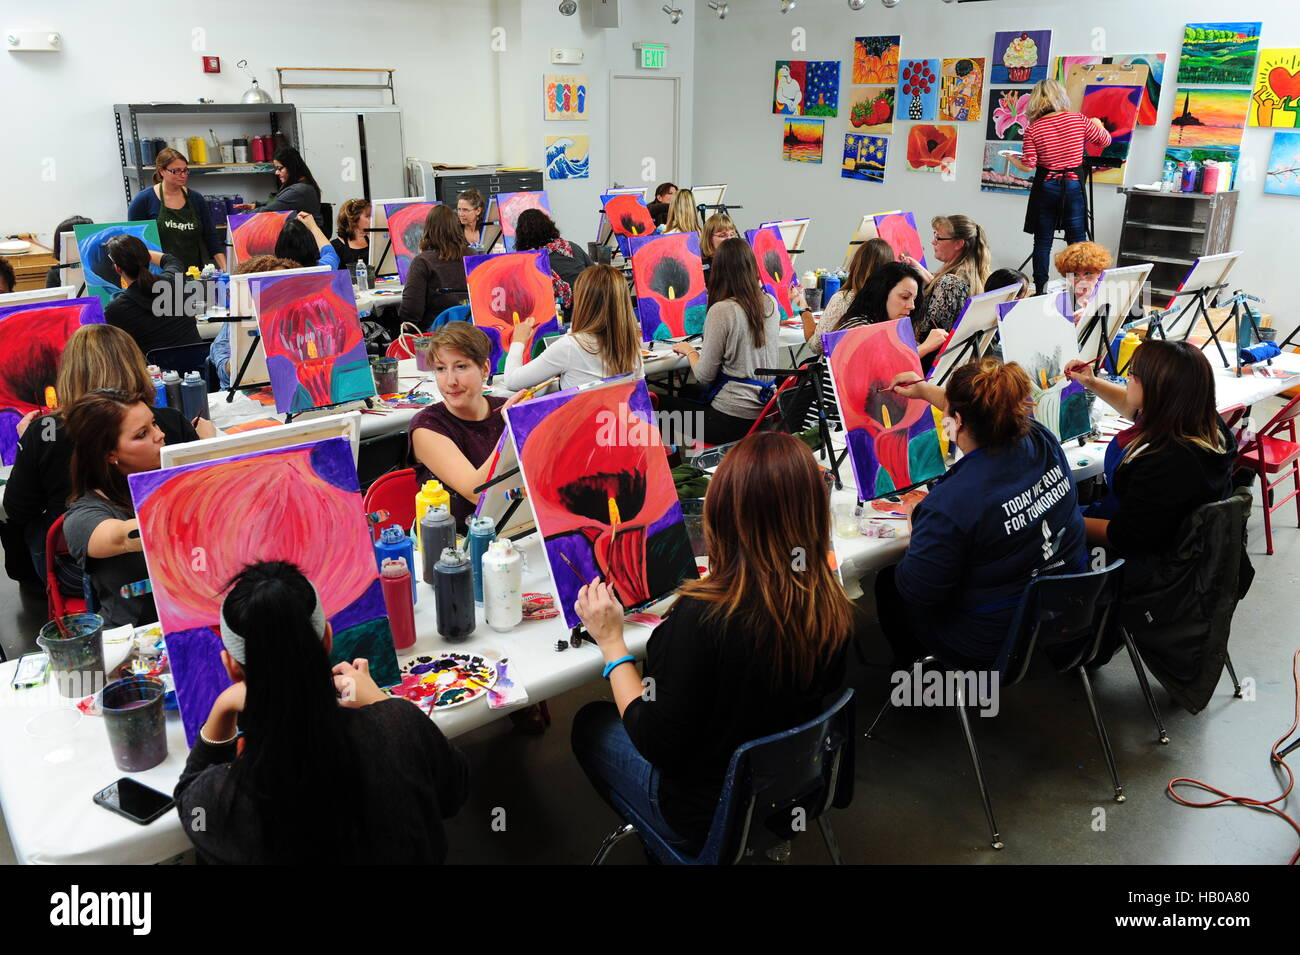 Adult education art class people learning to paint flowers in an evening classroom - Stock Image